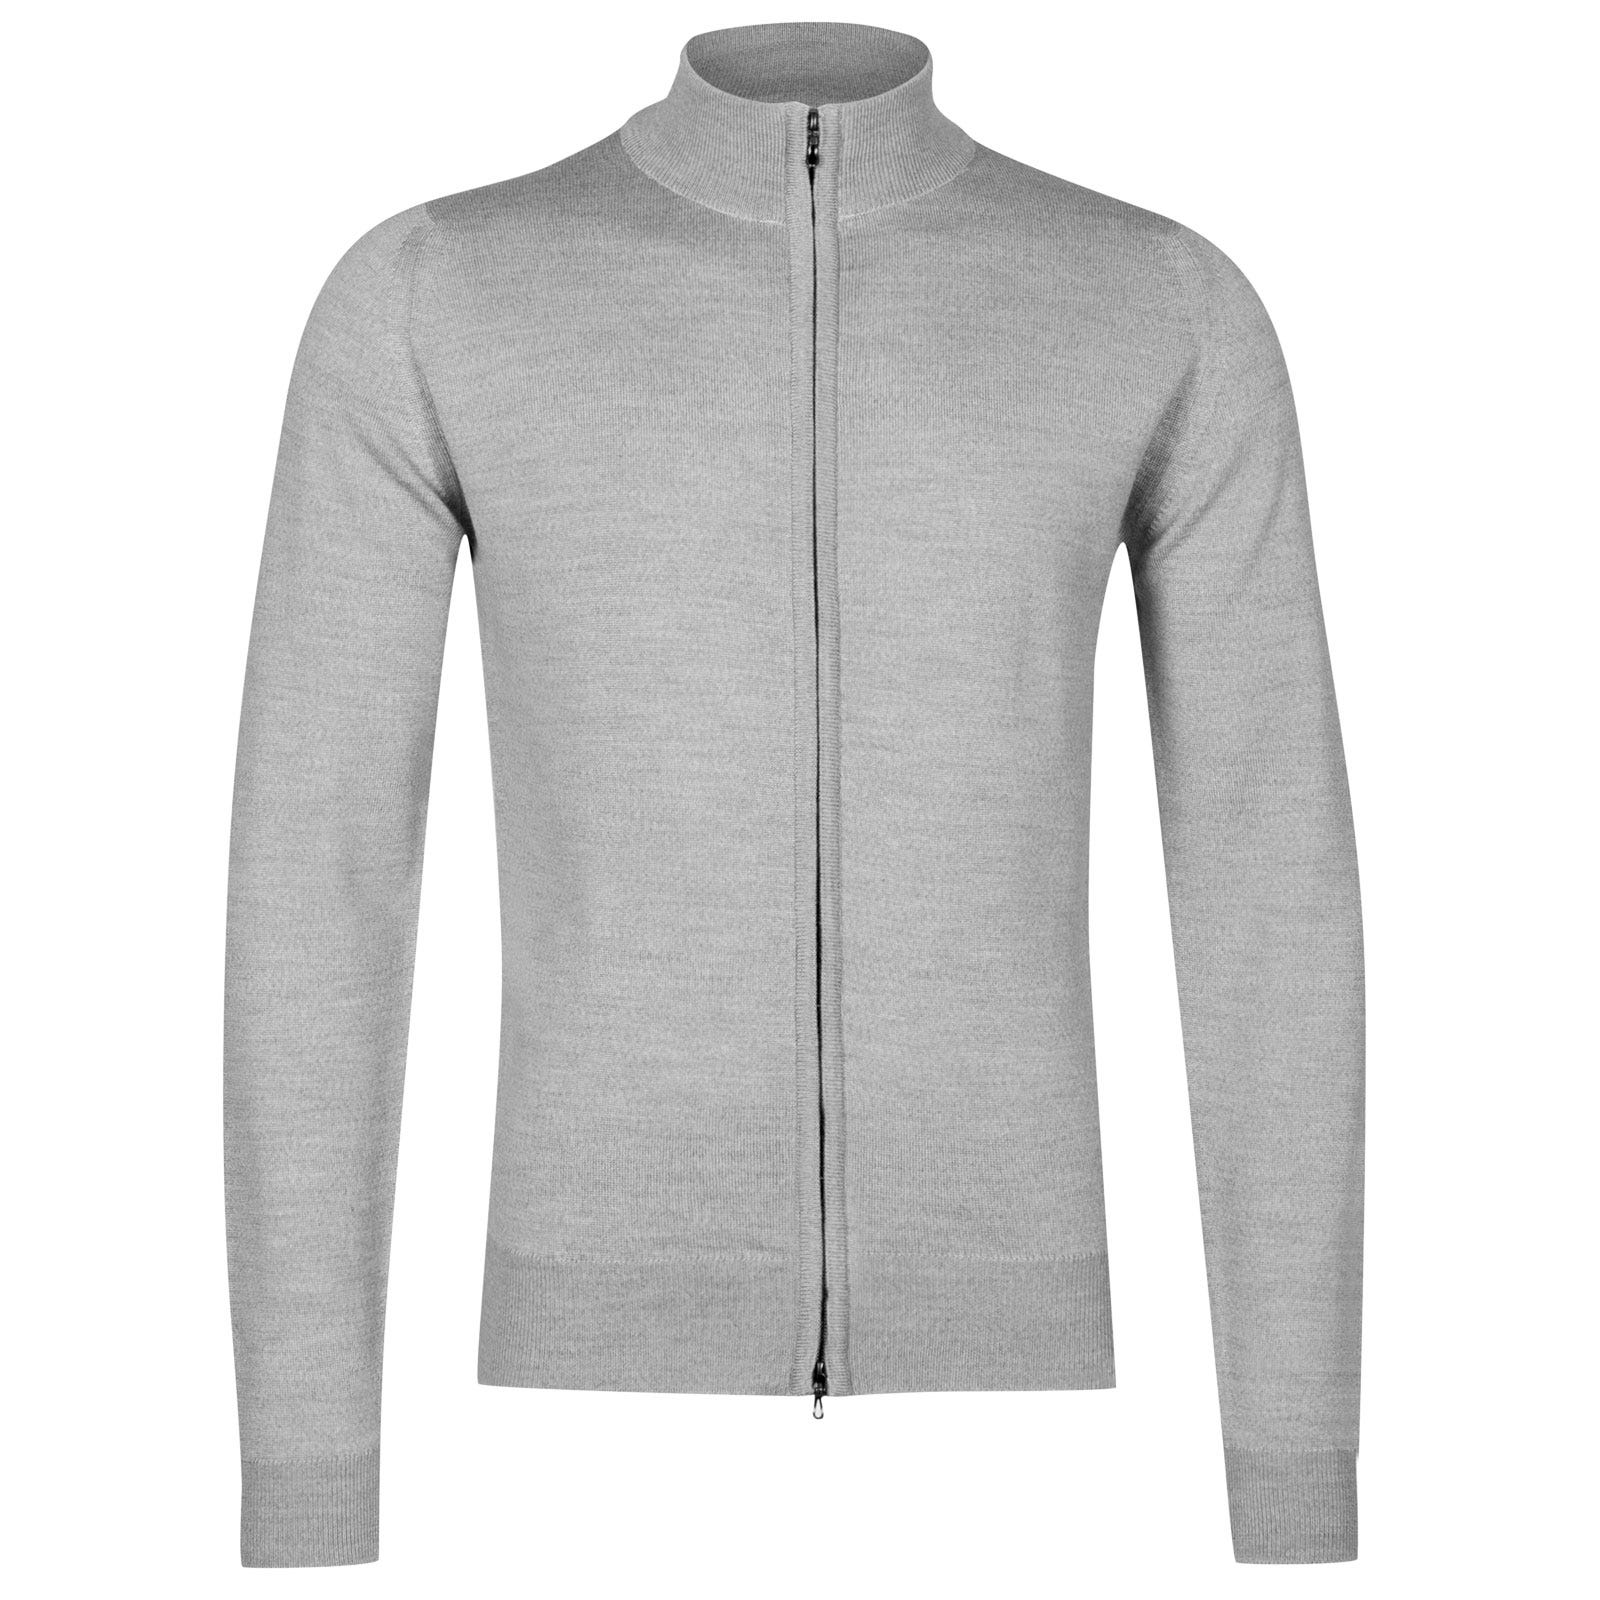 John Smedley Claygate Merino Wool Jacket in Bardot Grey-S